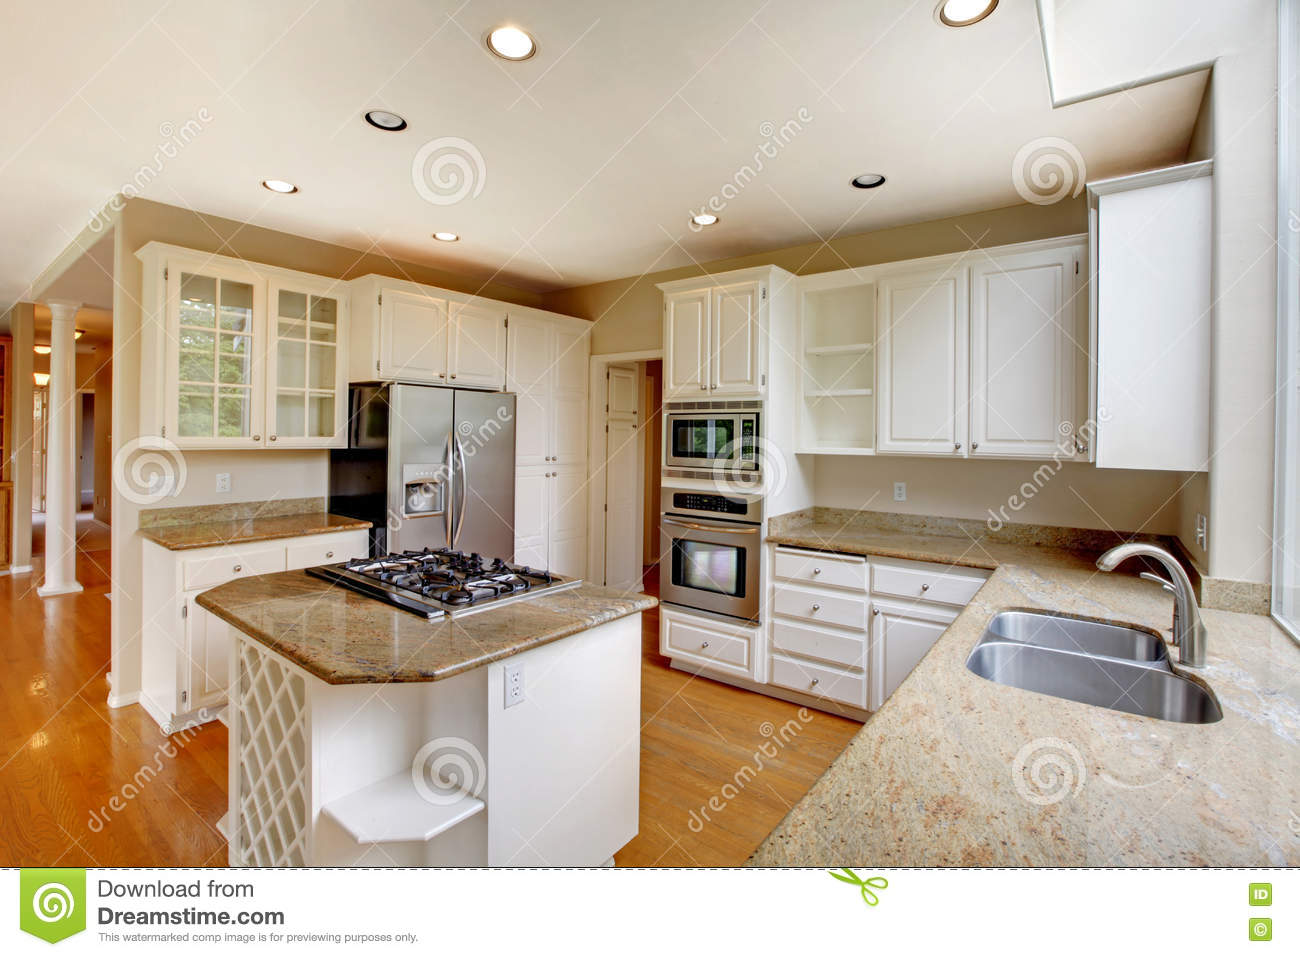 empty red dining room interior with built in cabinets stock photo classic american kitchen interior with white cabinets and built in stainless steel fridge royalty